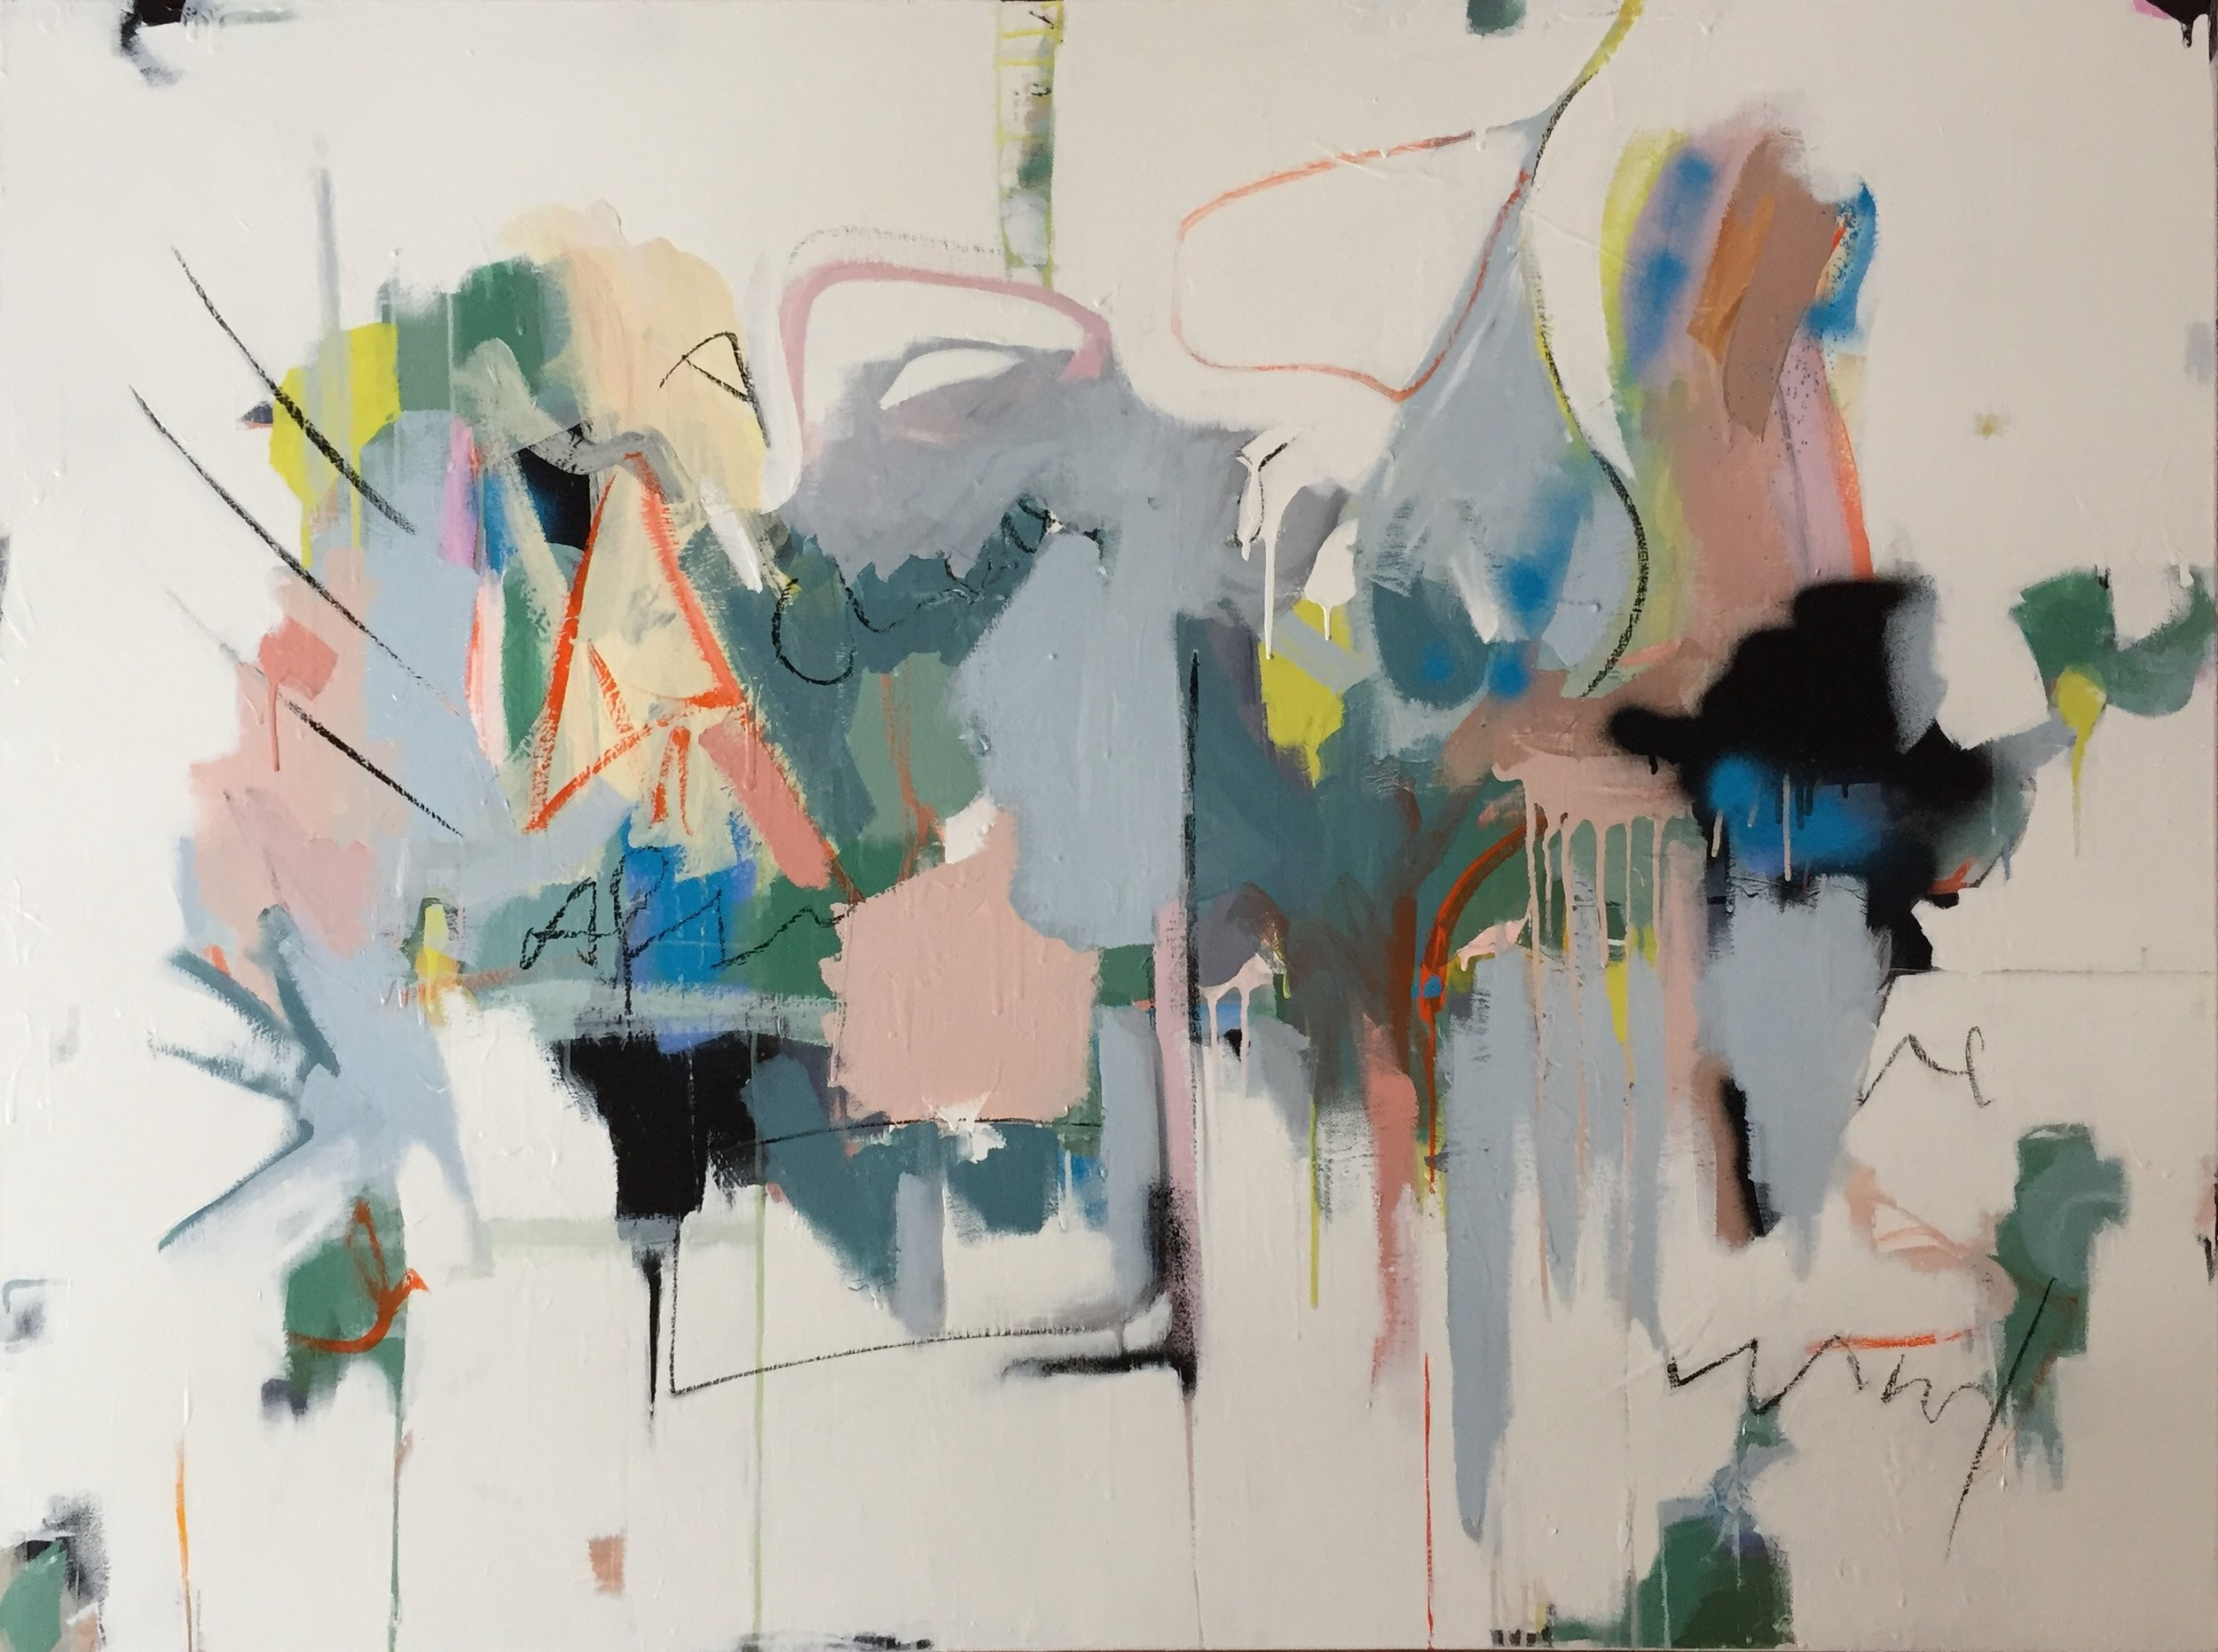 A Chasing After the Wind 36x48 acrylic and charcoal on canvas.jpg